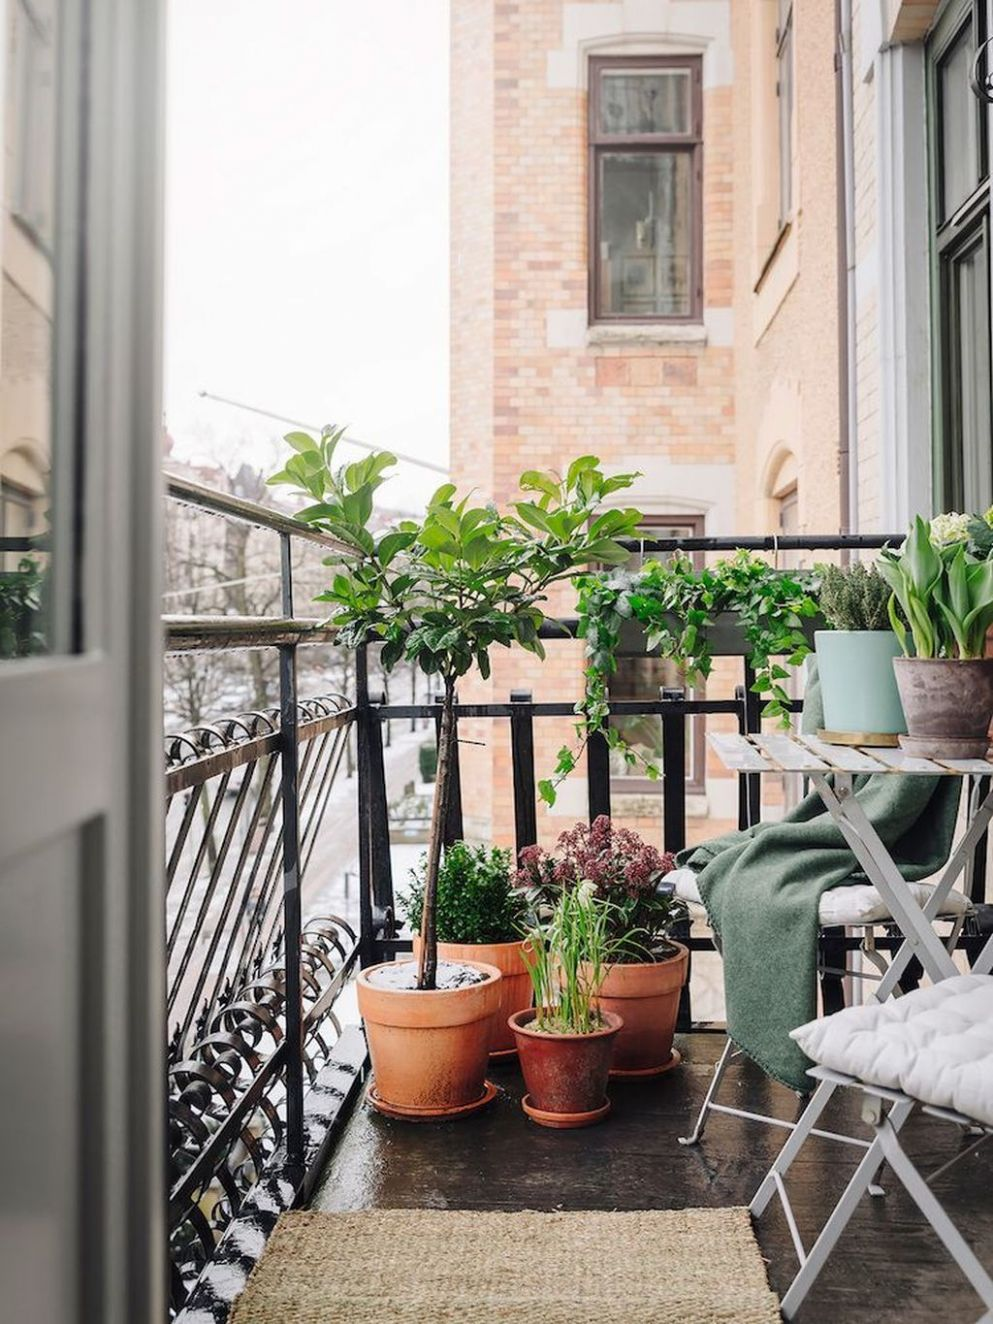 Small Apartment Balcony Garden Ideas India (With images) | Small ..